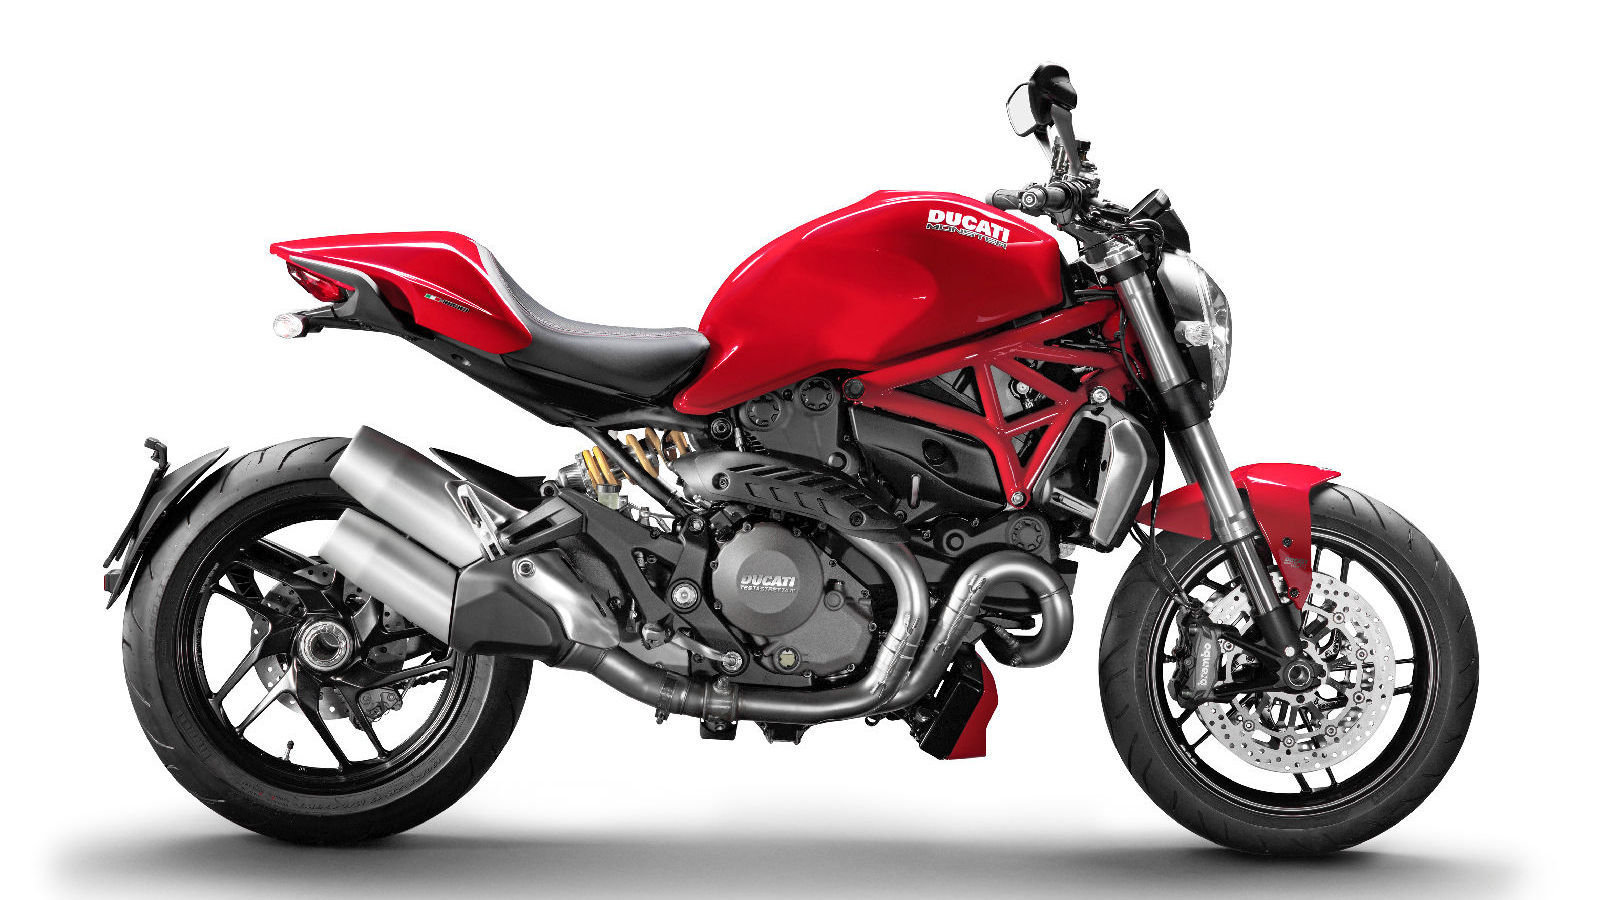 2015 2017 ducati monster 1200 1200 s 1200 r review. Black Bedroom Furniture Sets. Home Design Ideas